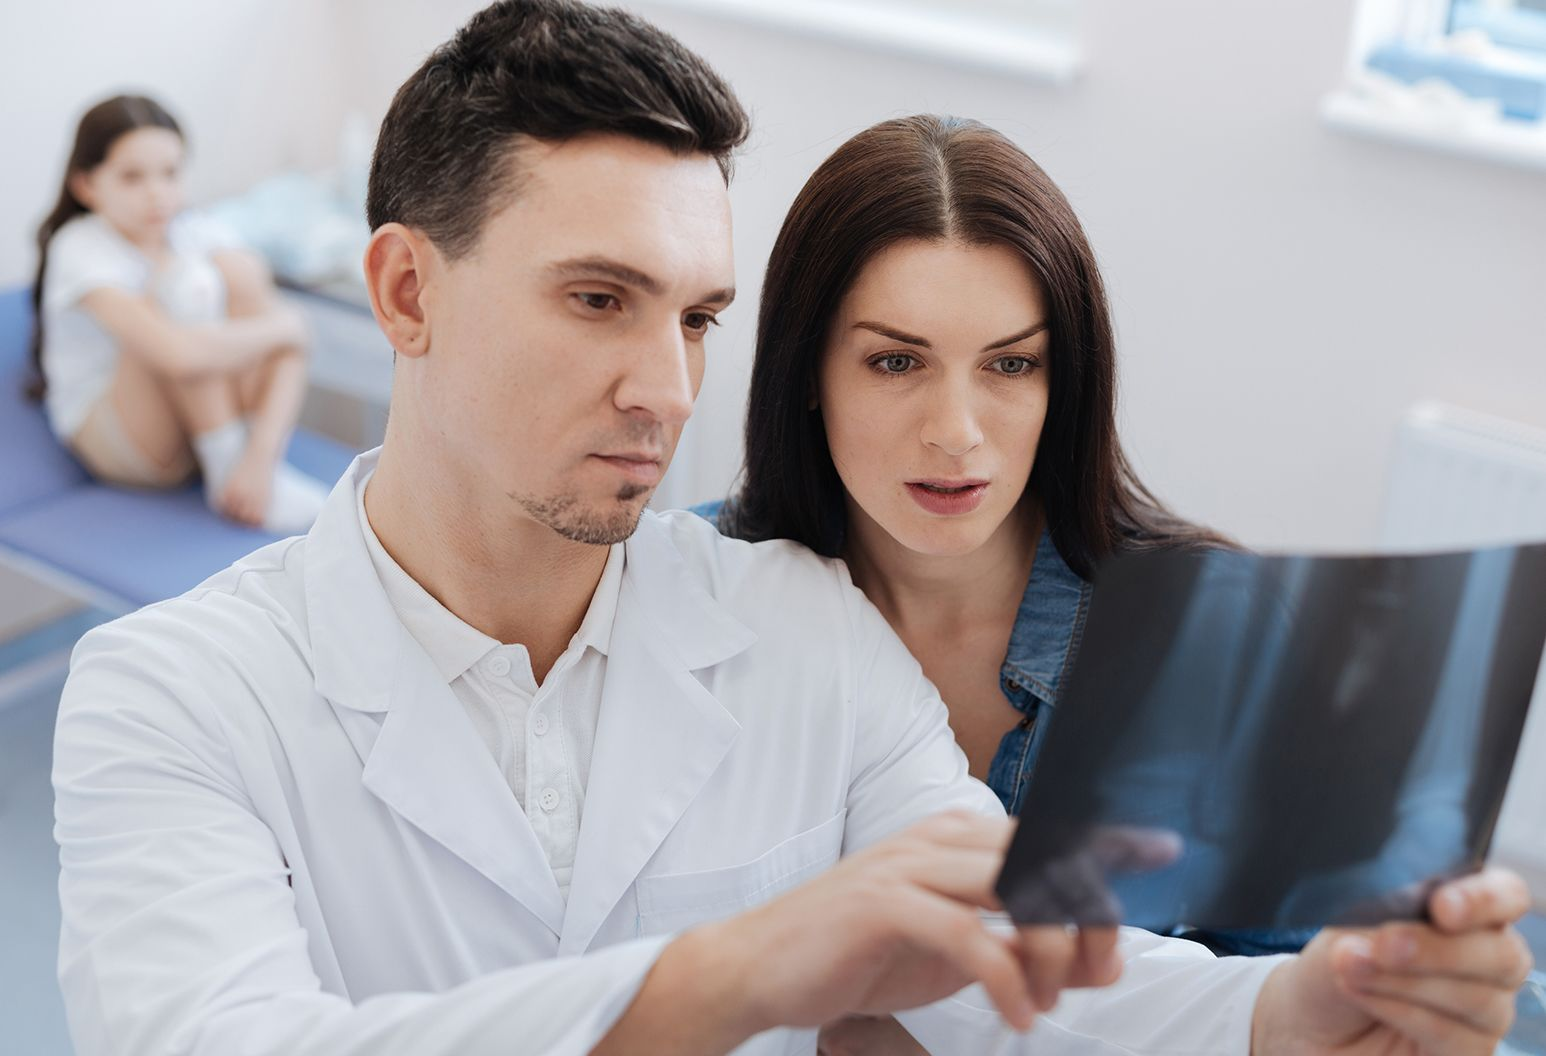 Handsome serious experienced doctor standing near the worried woman and showing her an X ray photo while explaining the problem